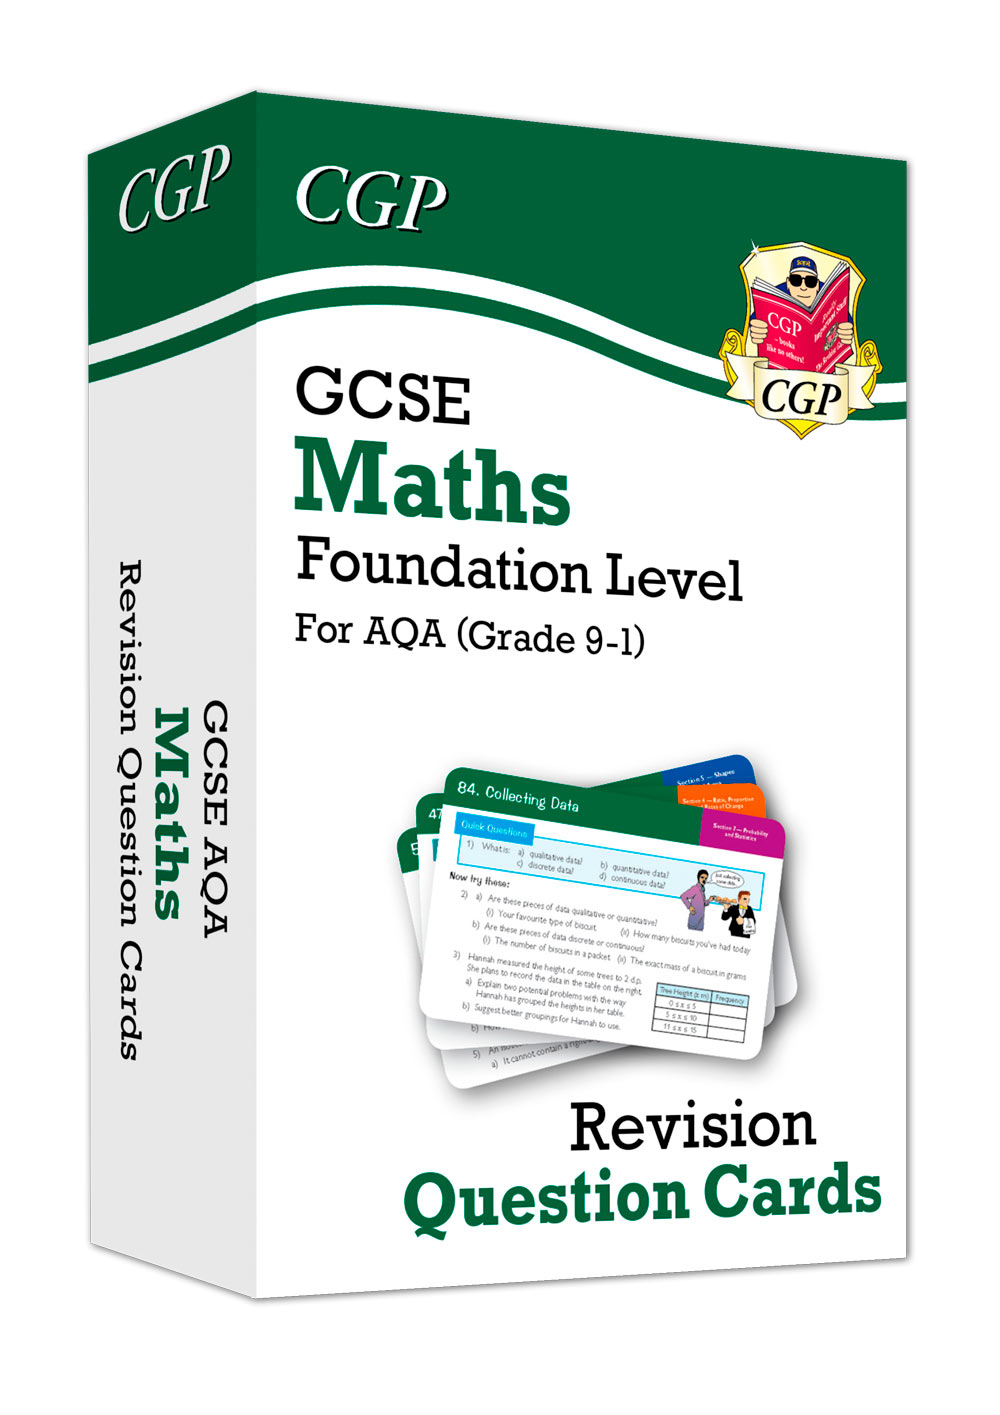 MQFF41 - New Grade 9-1 GCSE Maths AQA Revision Question Cards - Foundation